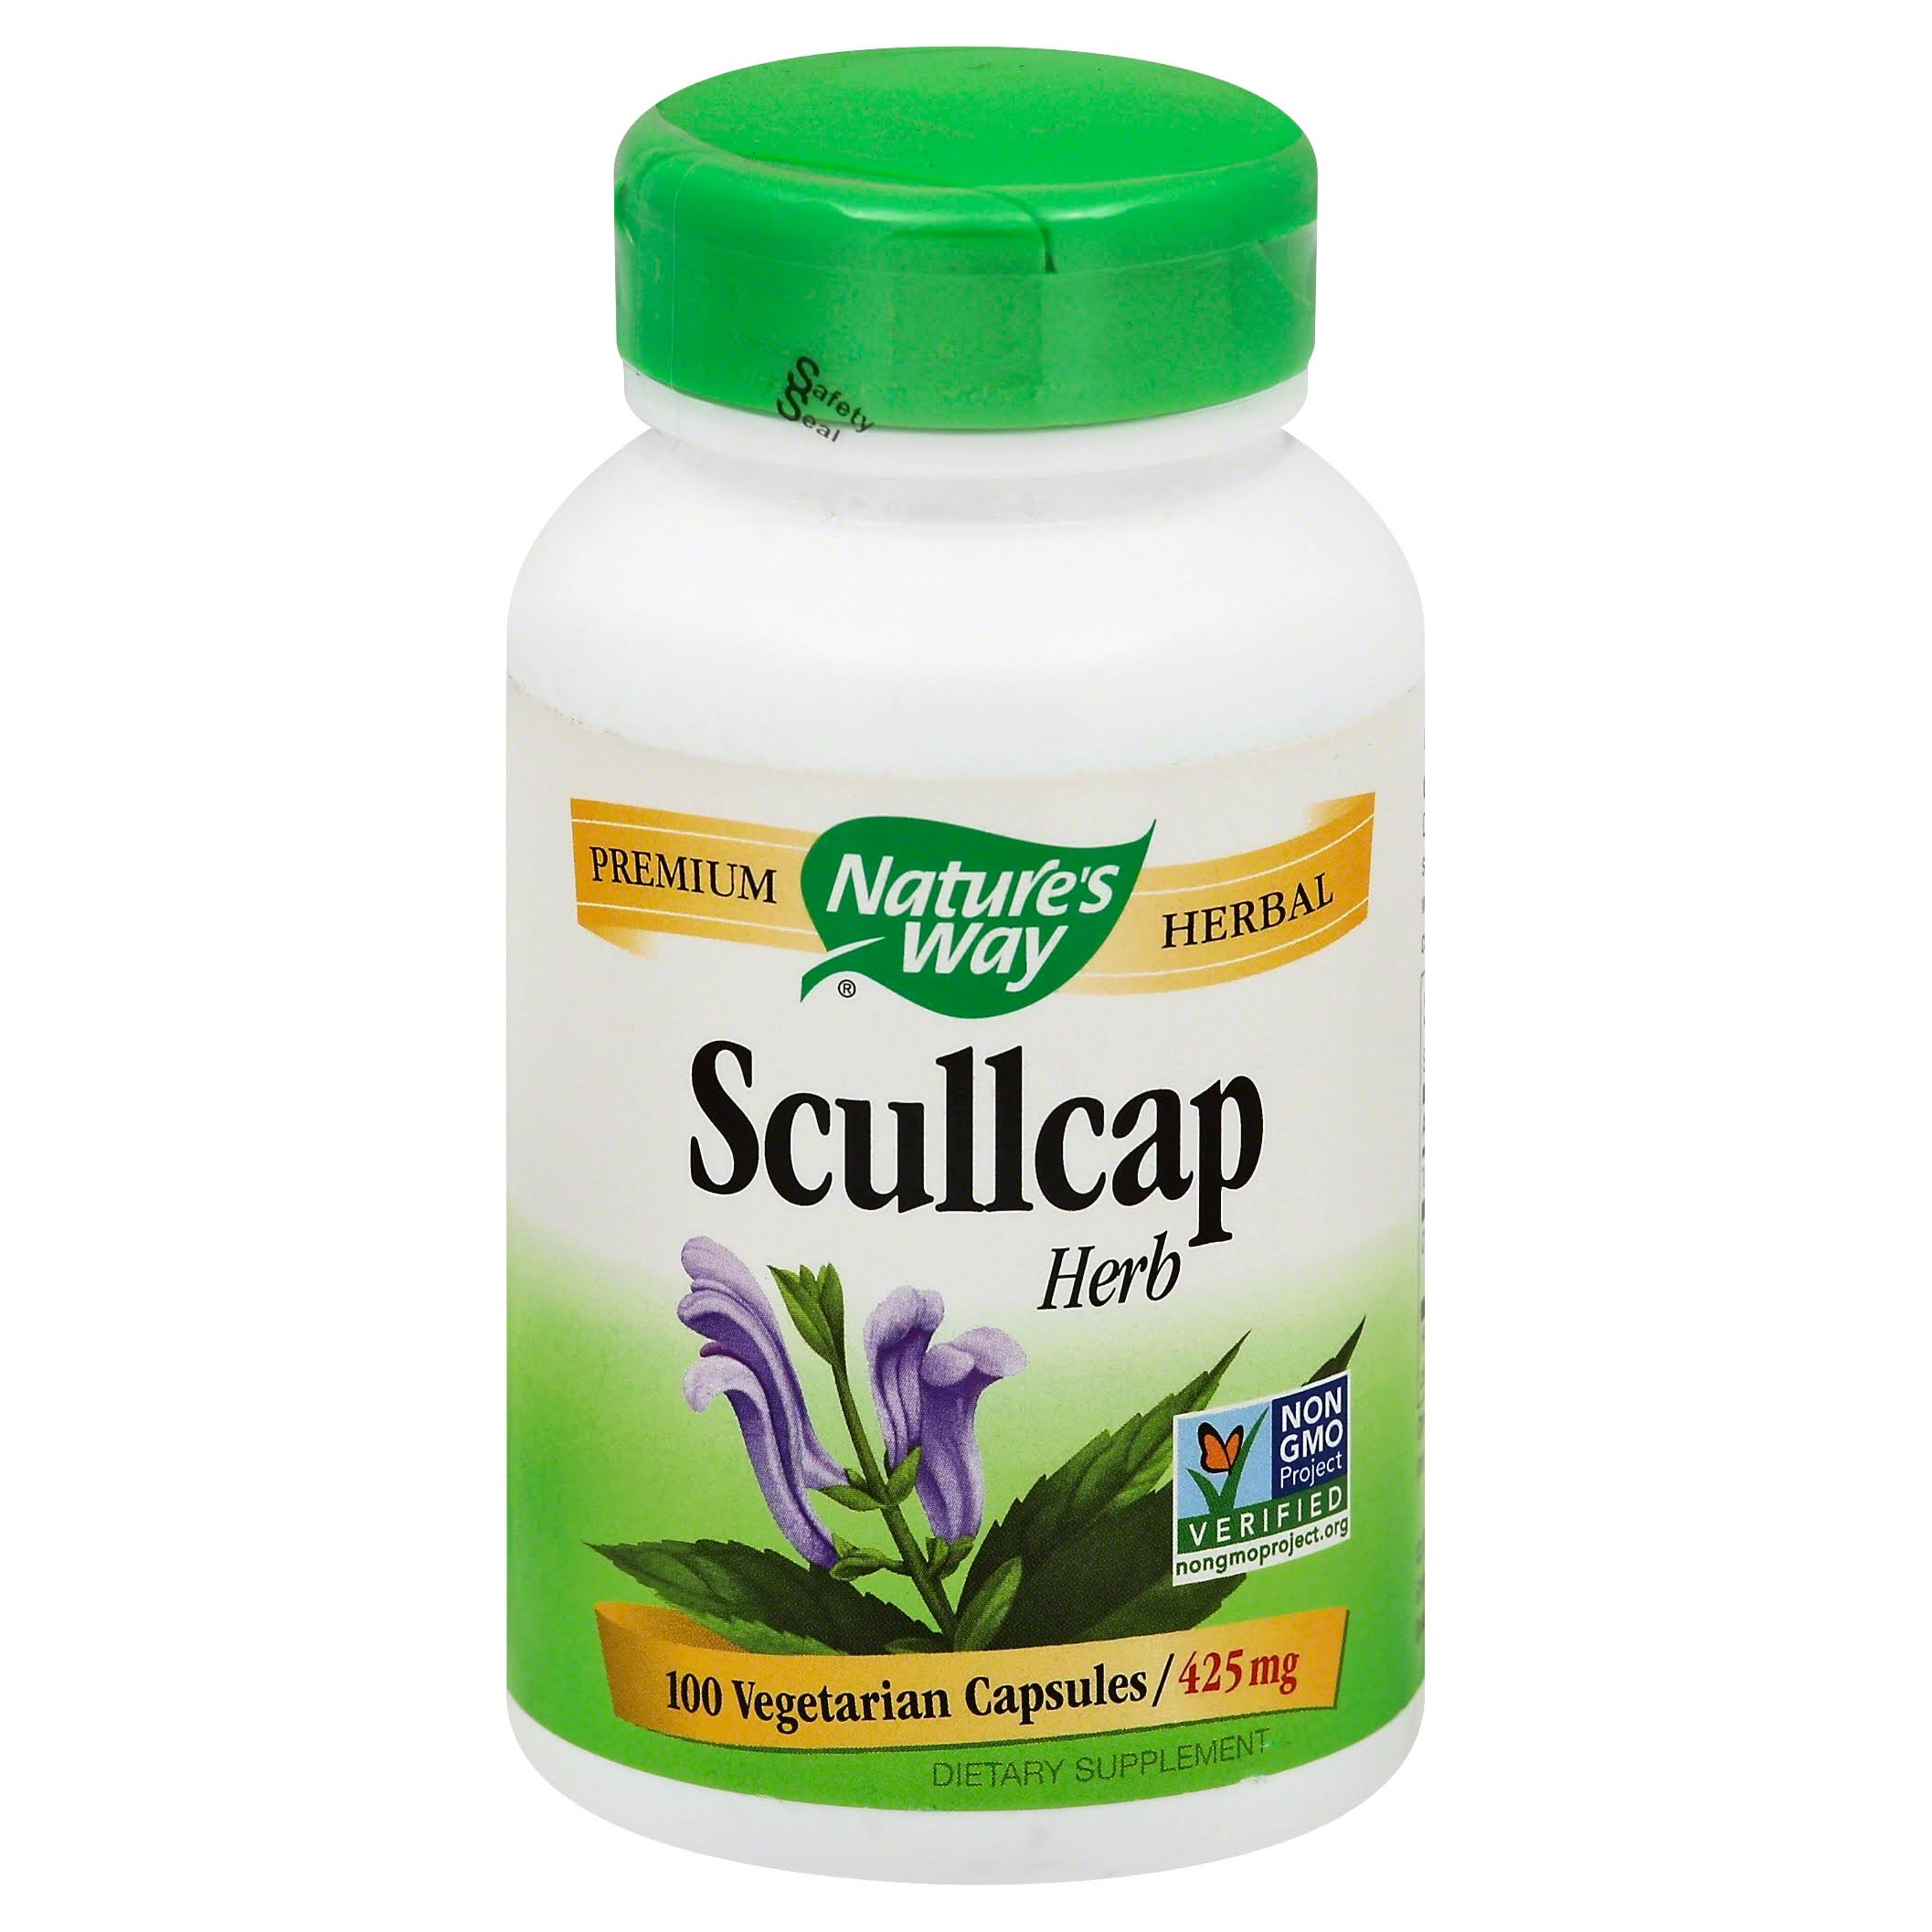 Nature's Way Scullcap Herb Dietary Supplement - 100 Capsules